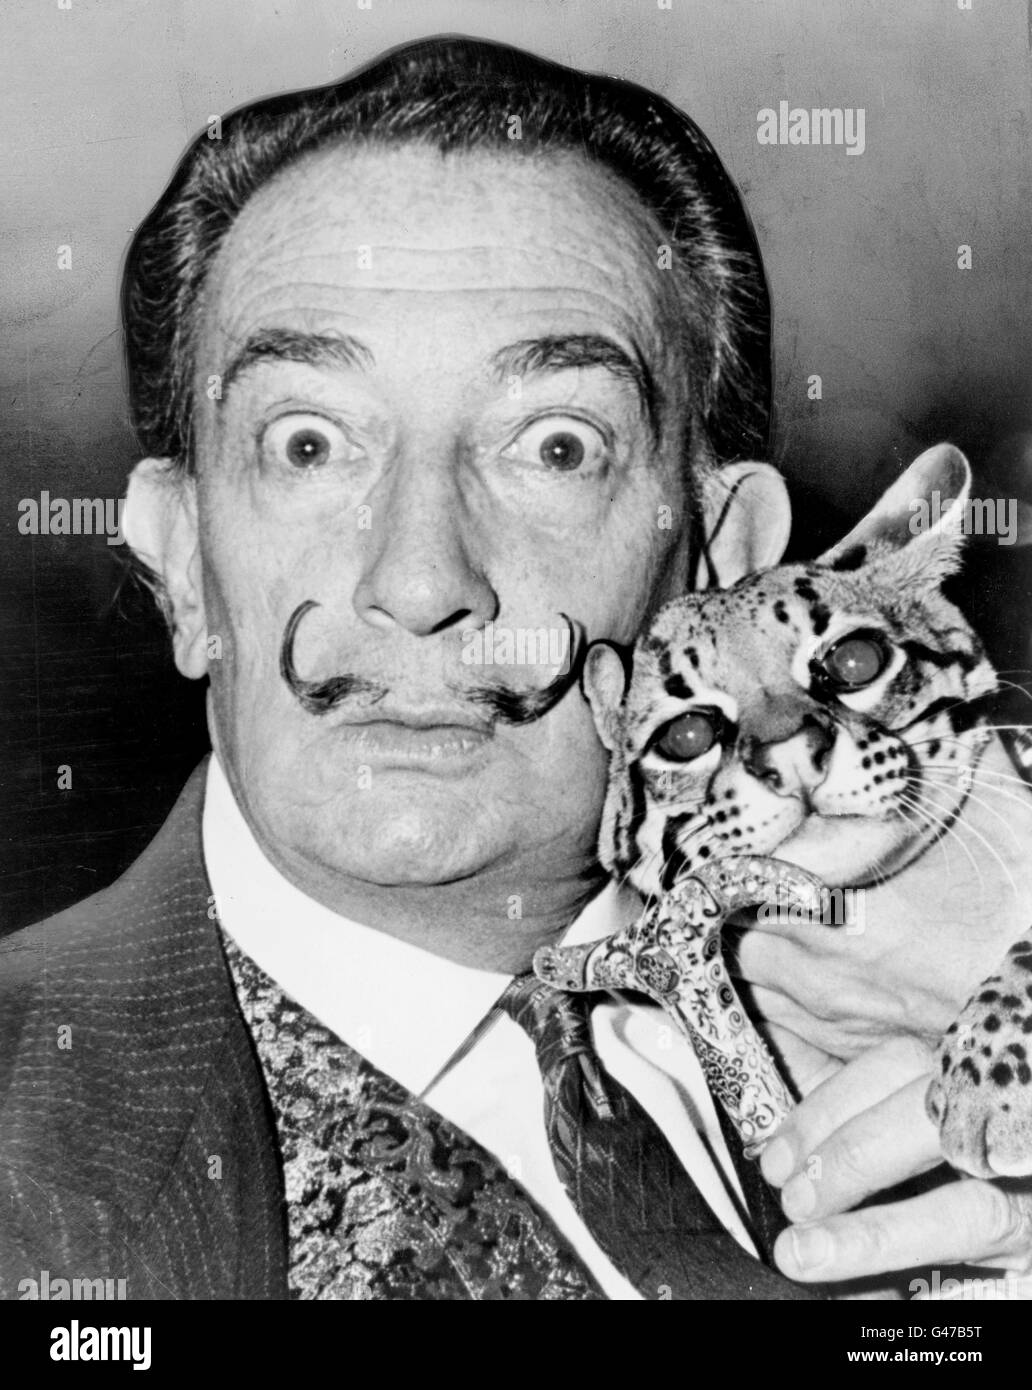 Salvador Dali, portrait by Roger Higgins, 1965 - Stock Image